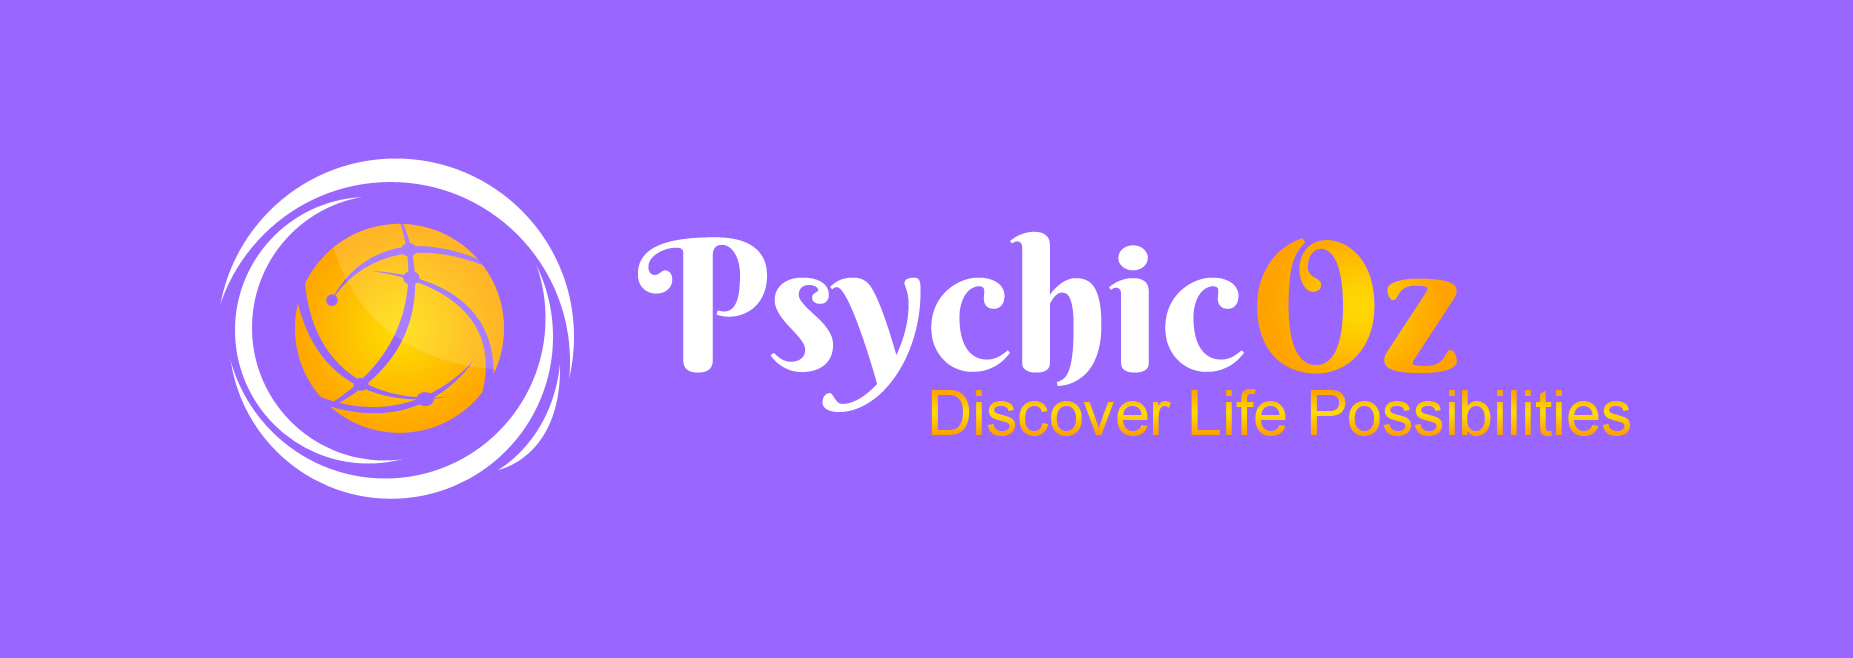 Finding Legitimate Psychic Services with PsychicOz